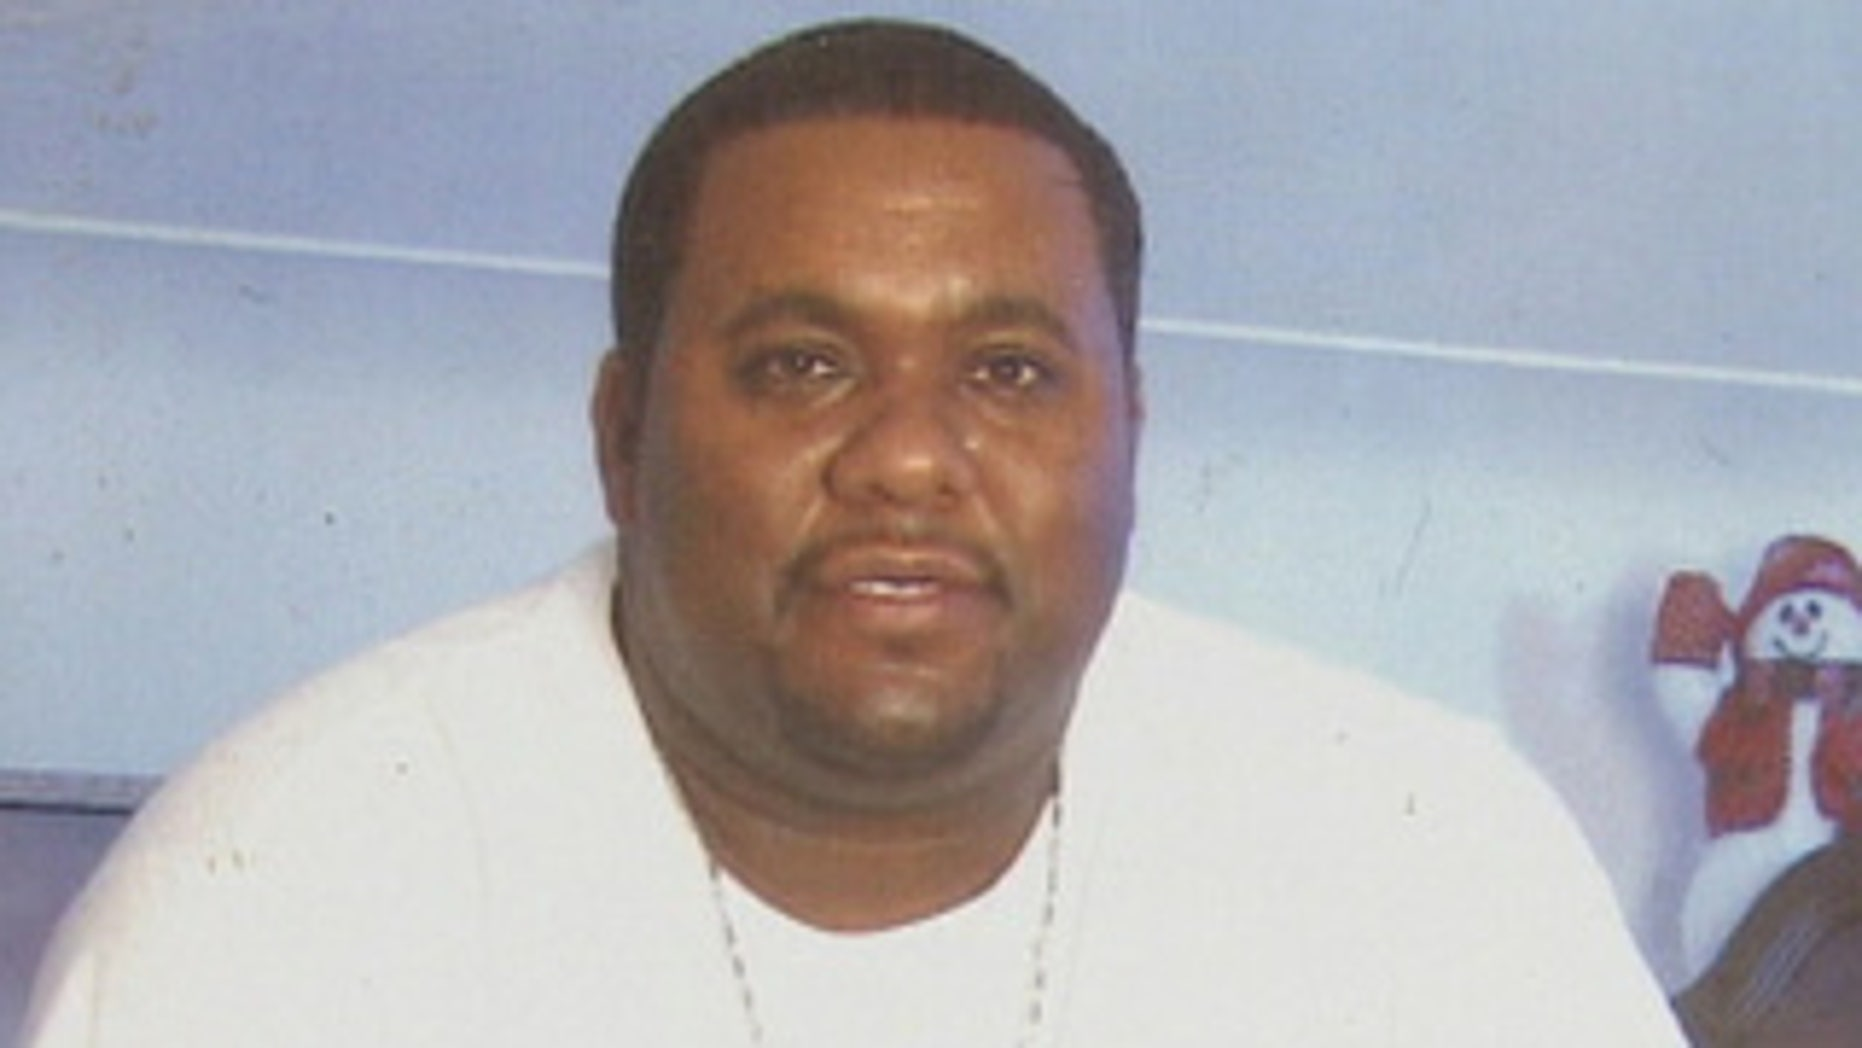 Murder Victim Corry Thomas was a Federal Witness.